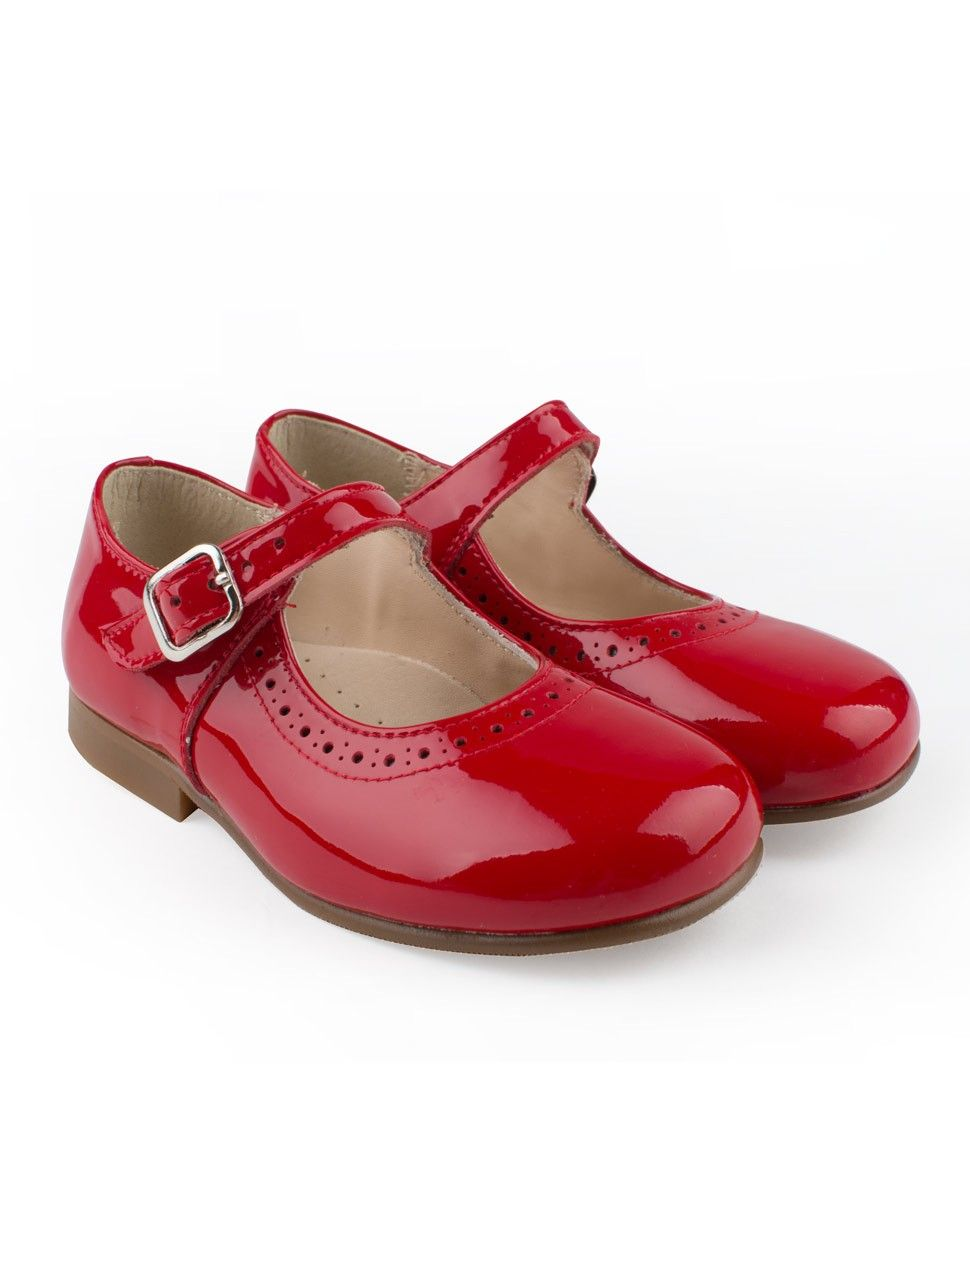 c138d17dd62cf Red patent leather classic brogues girls shoes with buckle from Eli ...